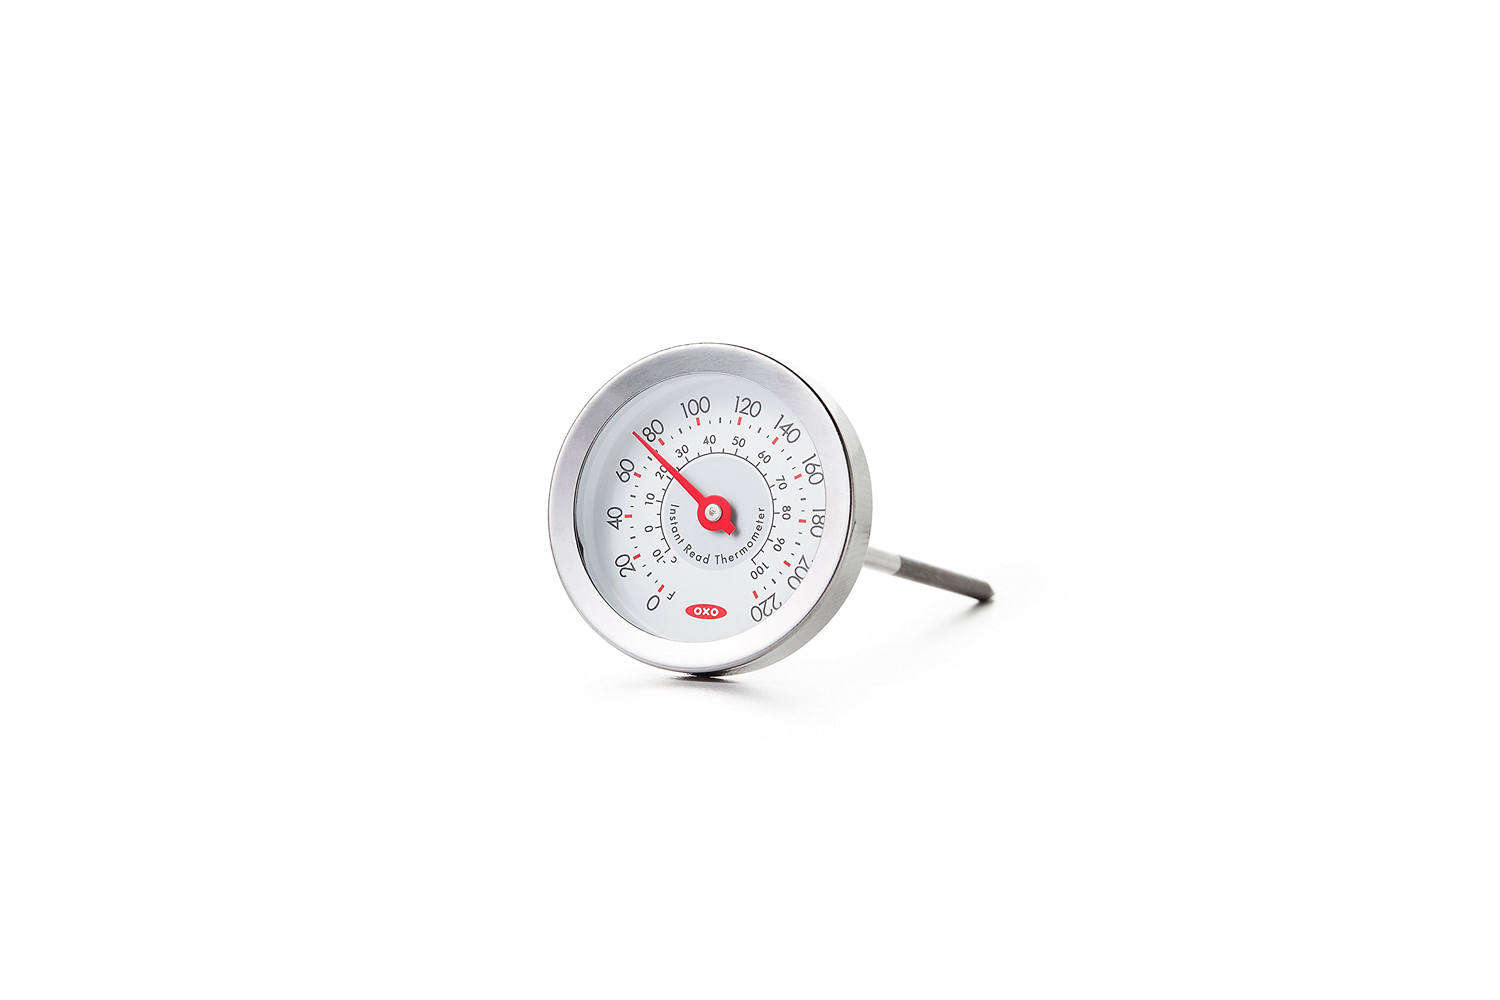 OXO Good Grips Chef's Precision Analog Instant Read Meat Thermometer